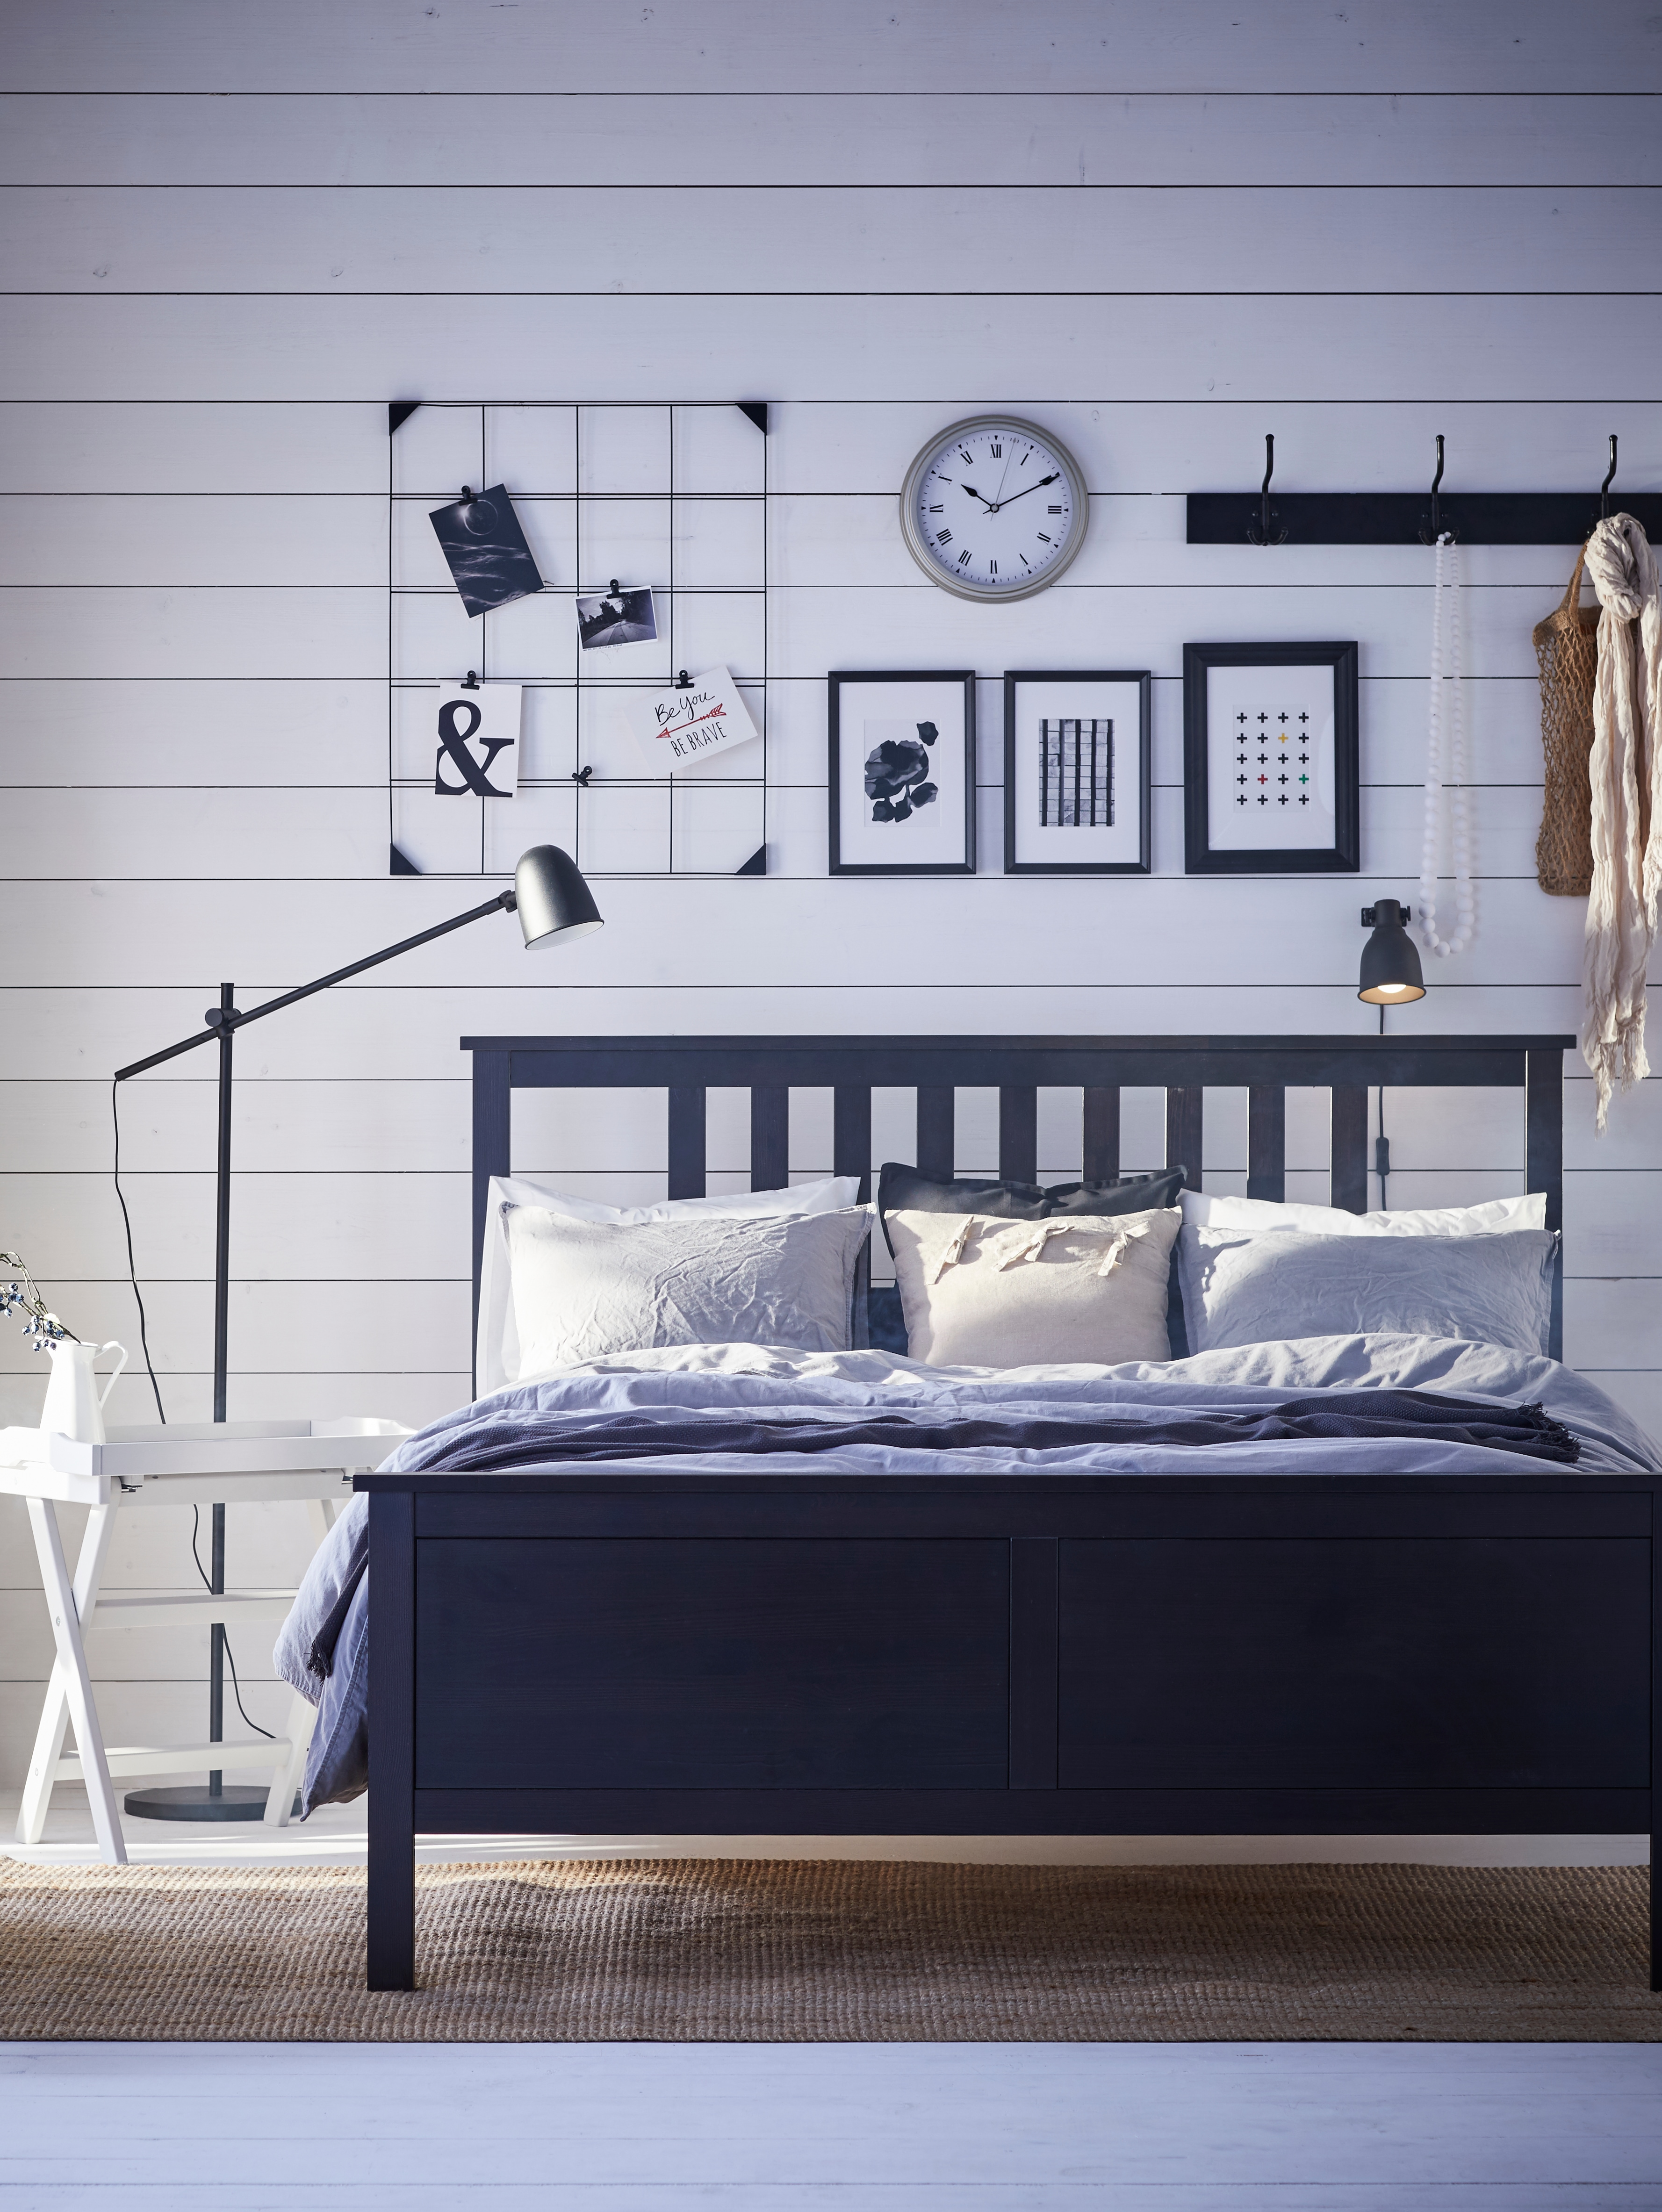 Bedroom with black bedframe, white tray table, black floor lamp, quilt cover and pillowcases, wall clock, rack with hooks.